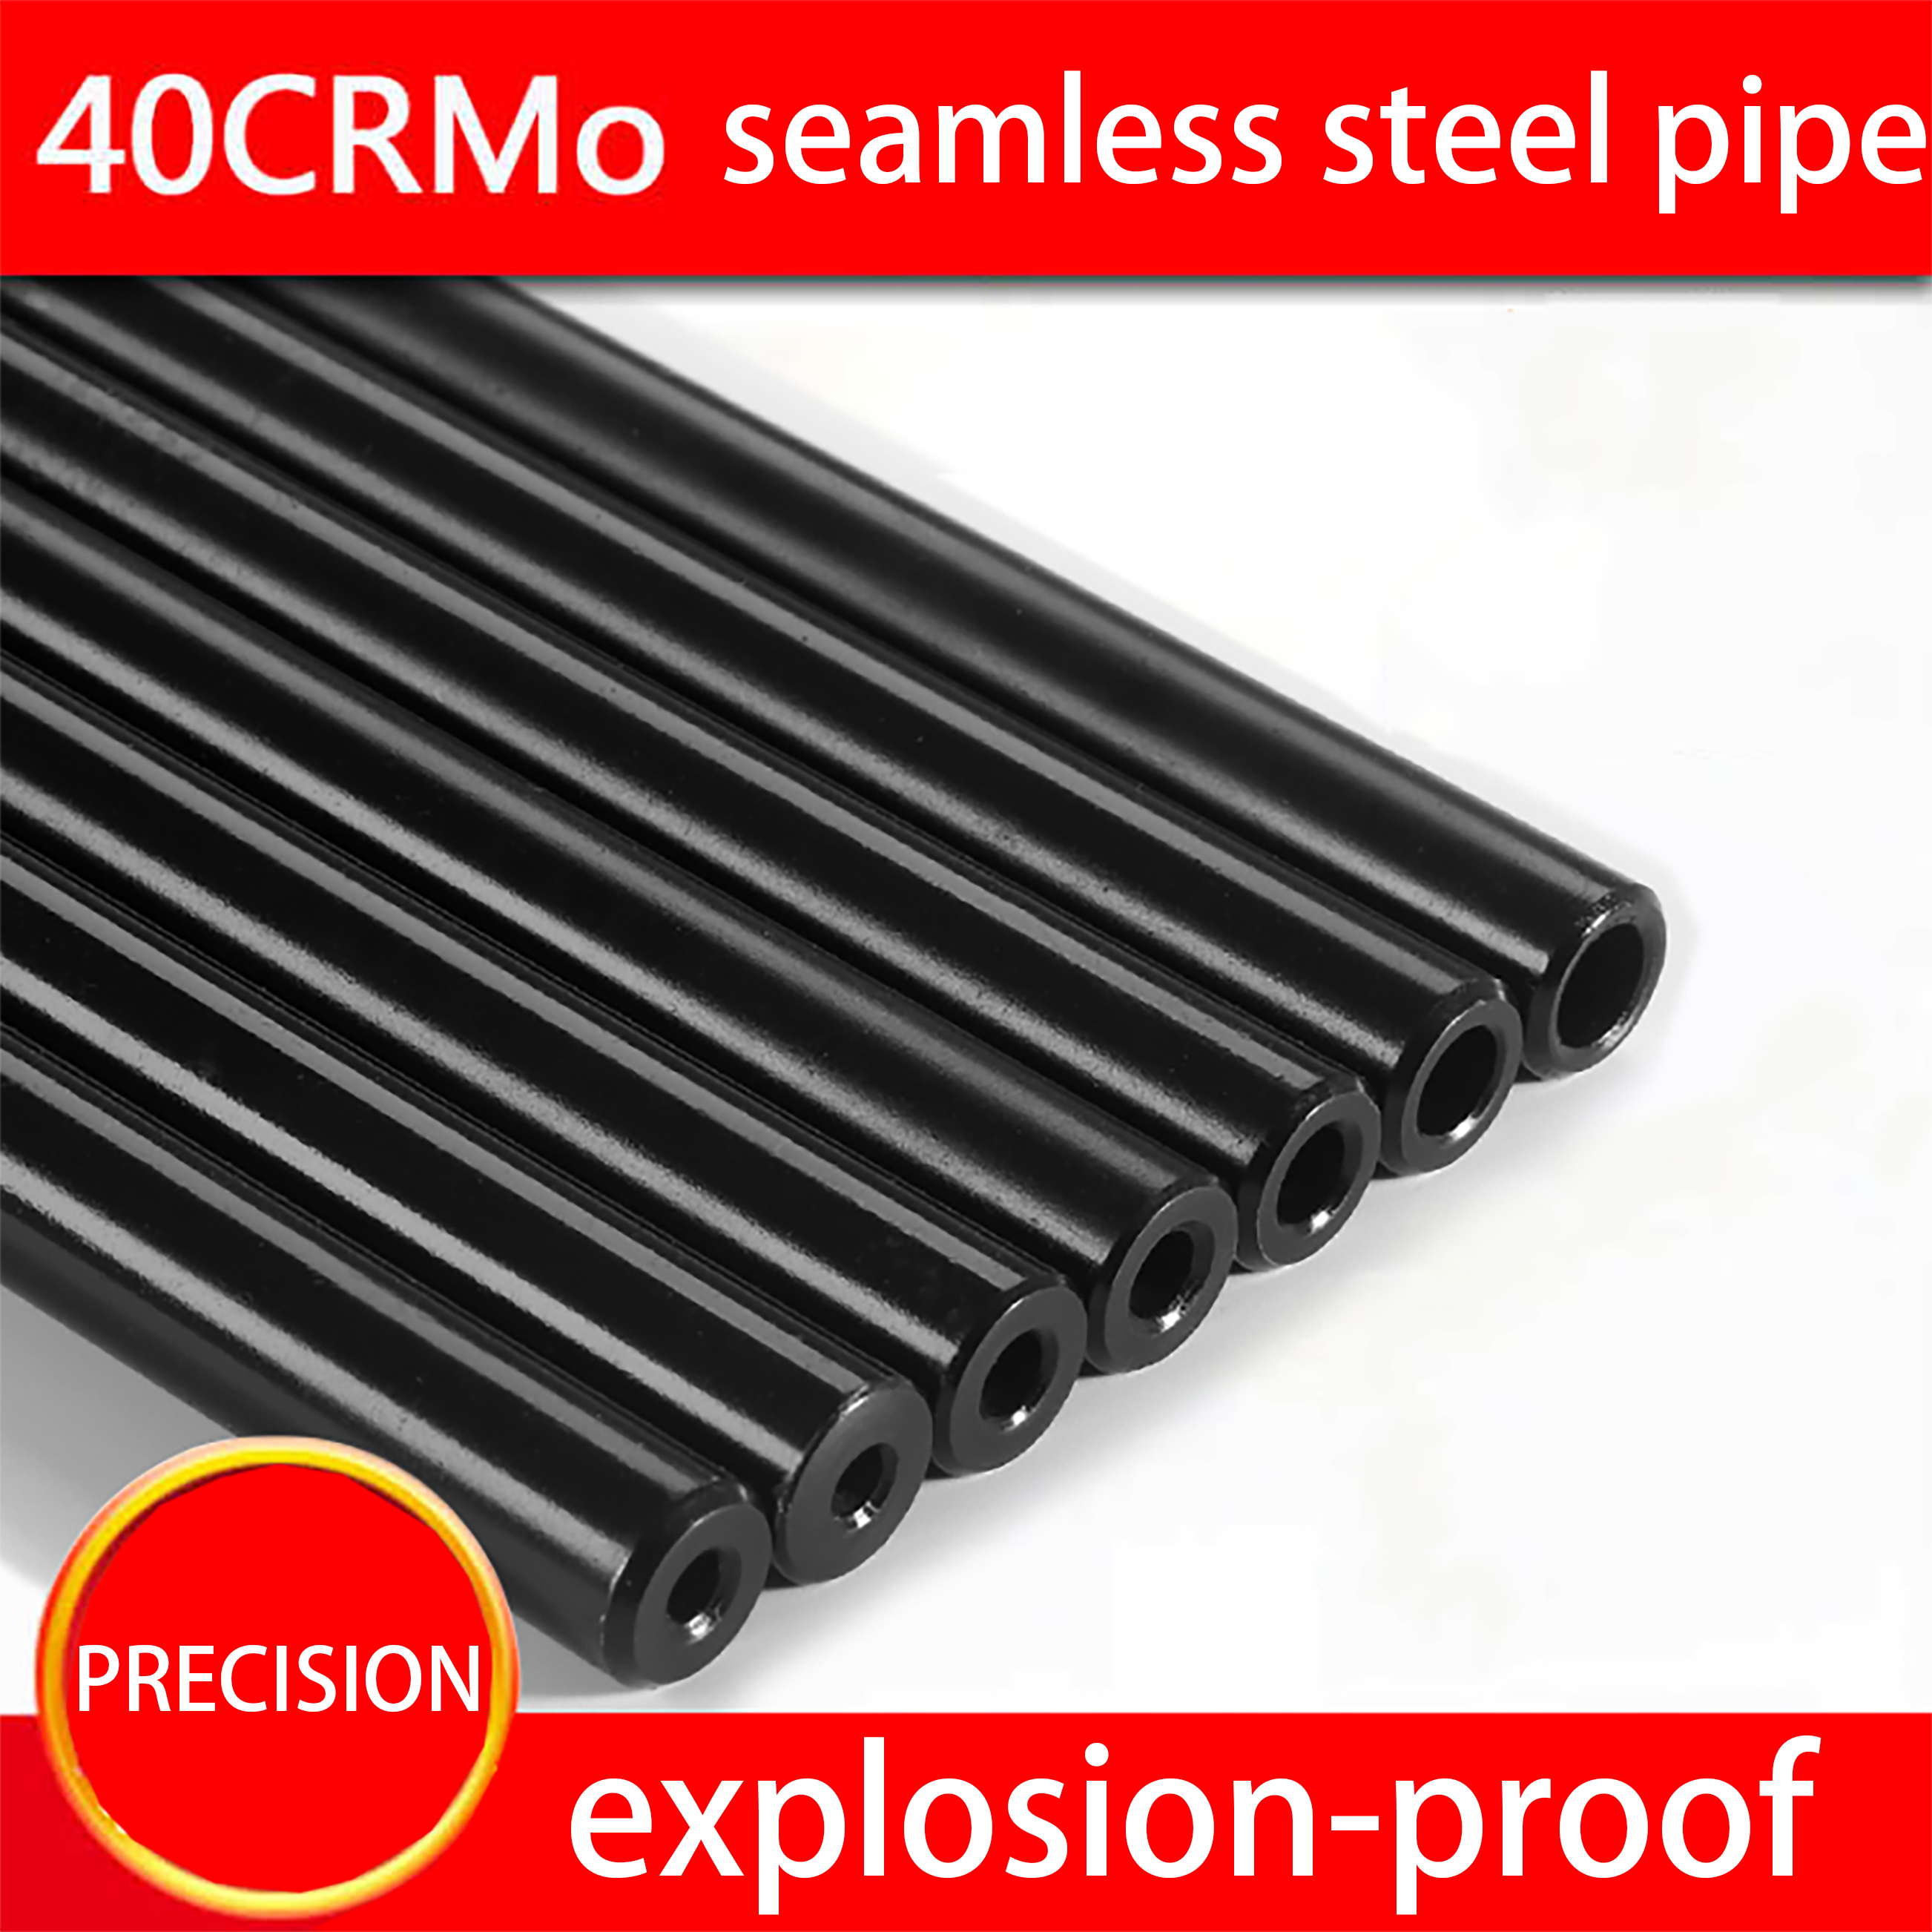 12mm O D Steel Pipe Seamless Explosion proof Tool Part Tube Hydraulic Alloy Precision for Home DIYprint black in Tool Parts from Tools